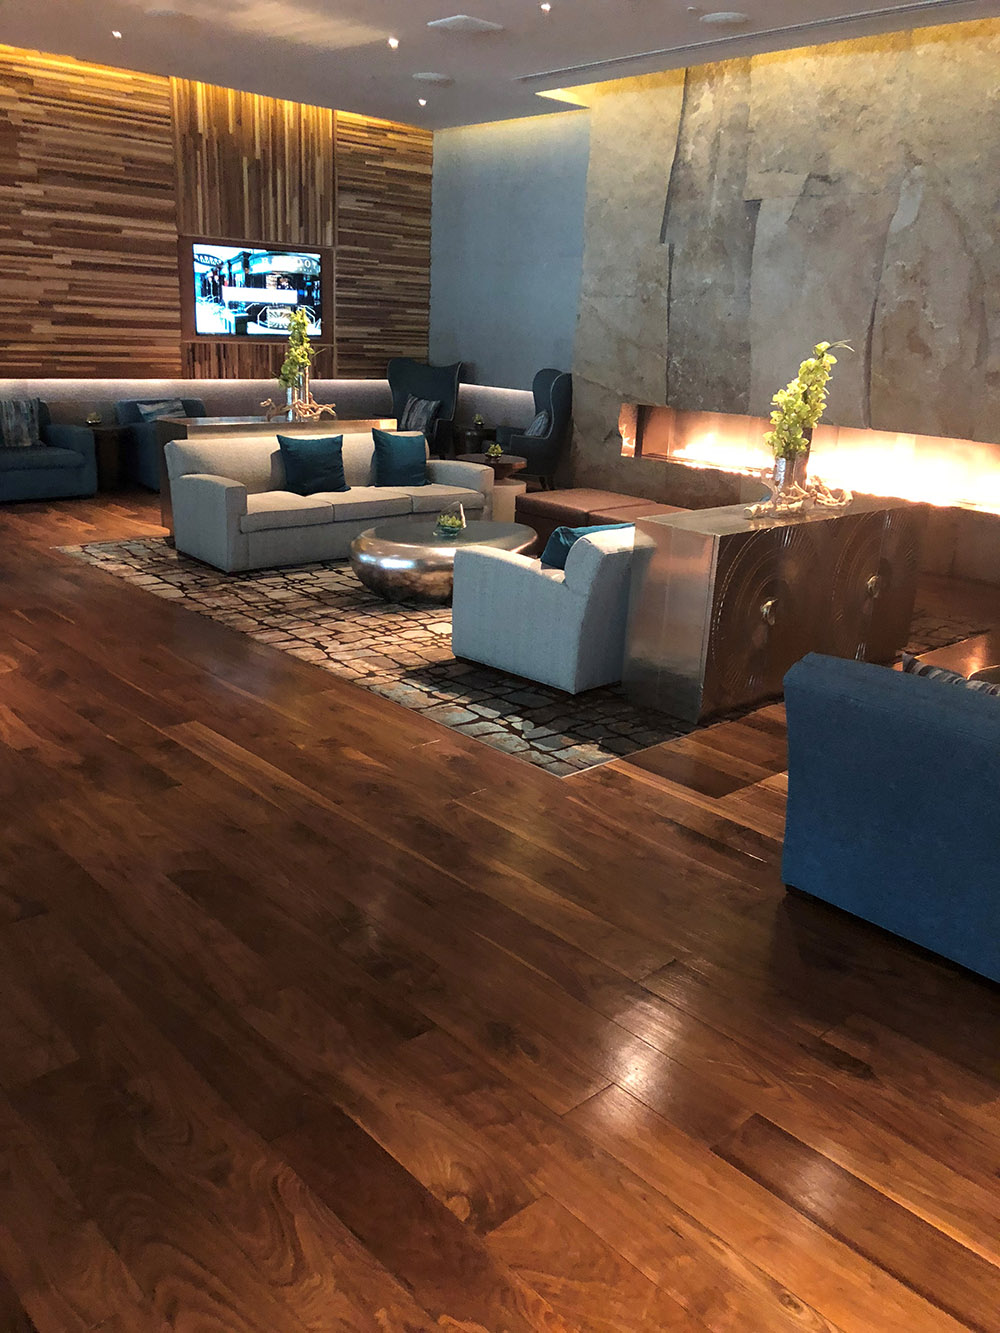 The Spa's fireside lounge.